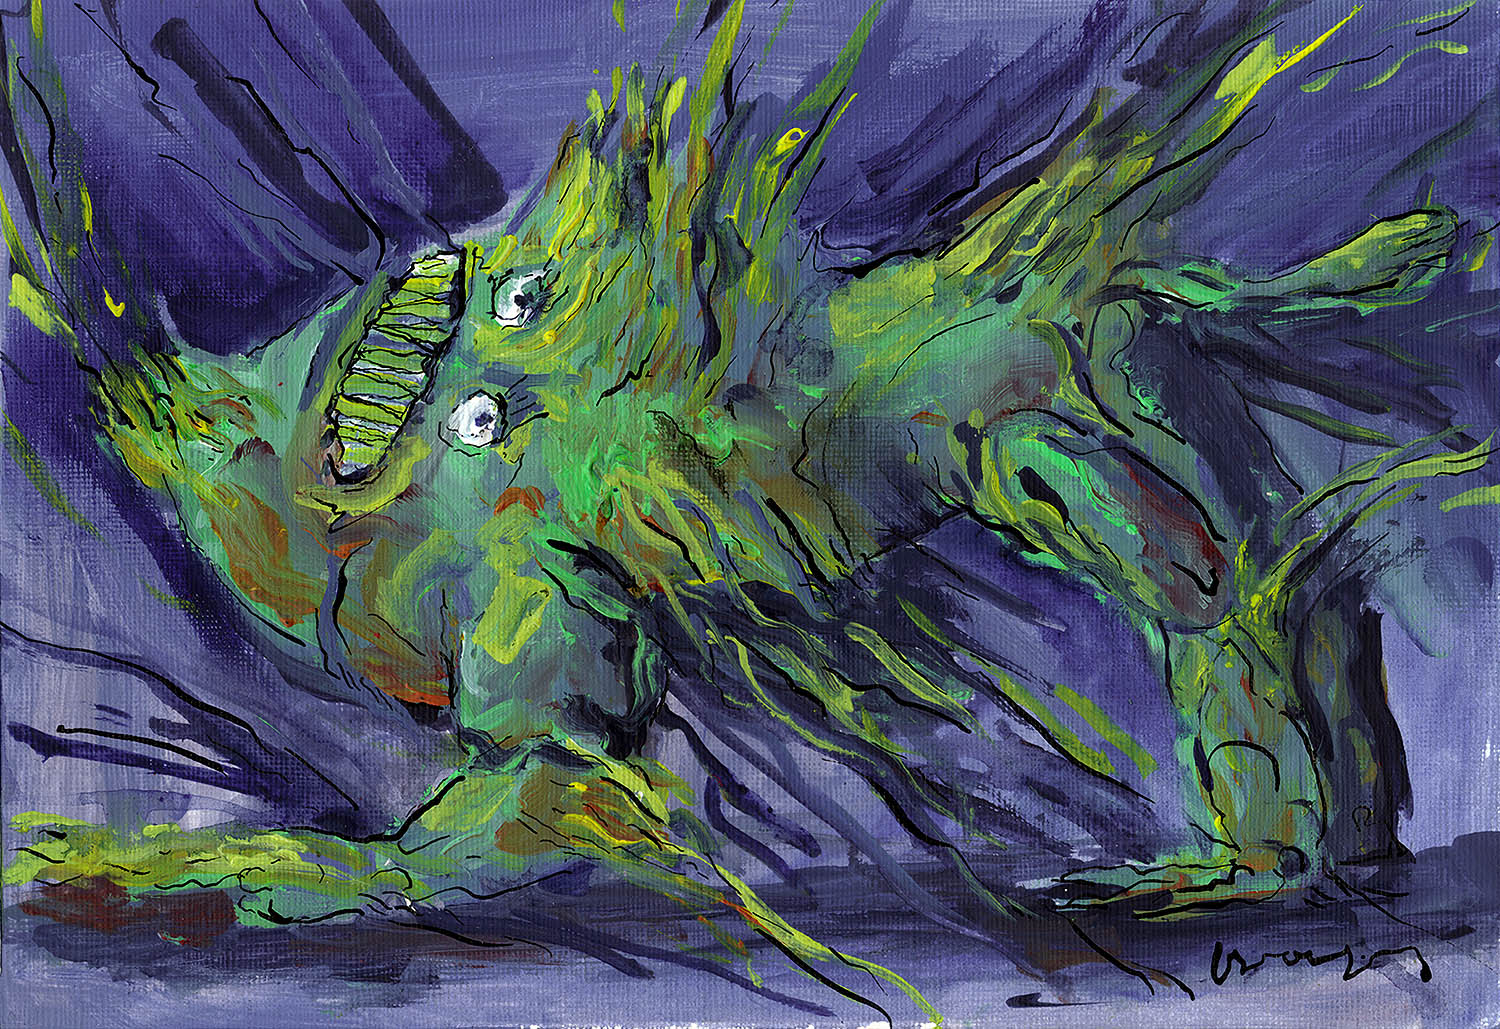 'Green Creature in Distress', abstract green creature painting on blue background by Greek multidisciplinary artist Kostas Gogas.